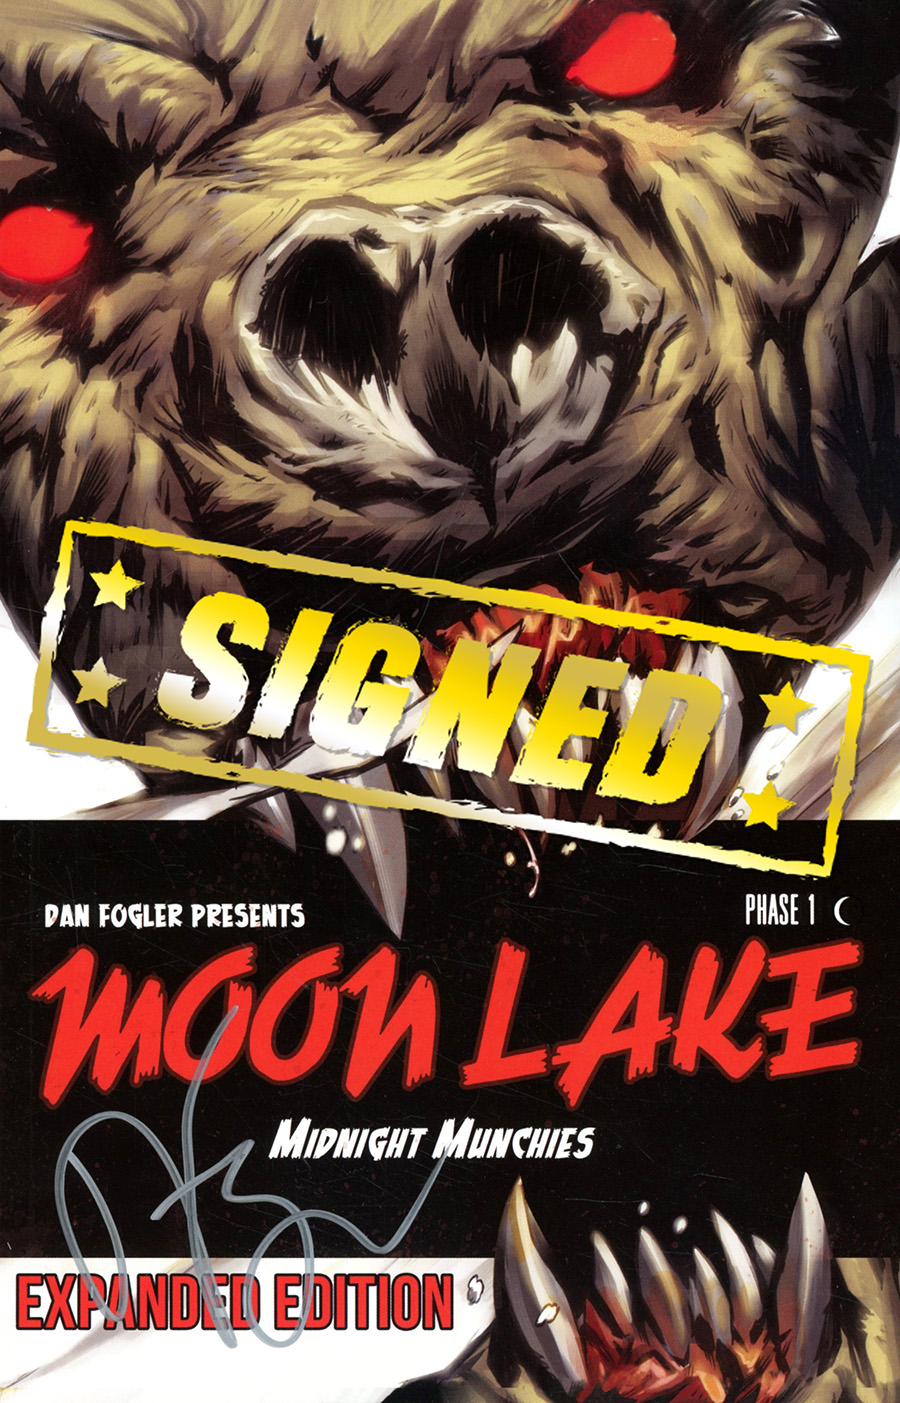 Moon Lake Vol 1 Midnight Munchies Expanded Edition TP Signed By Dan Fogler